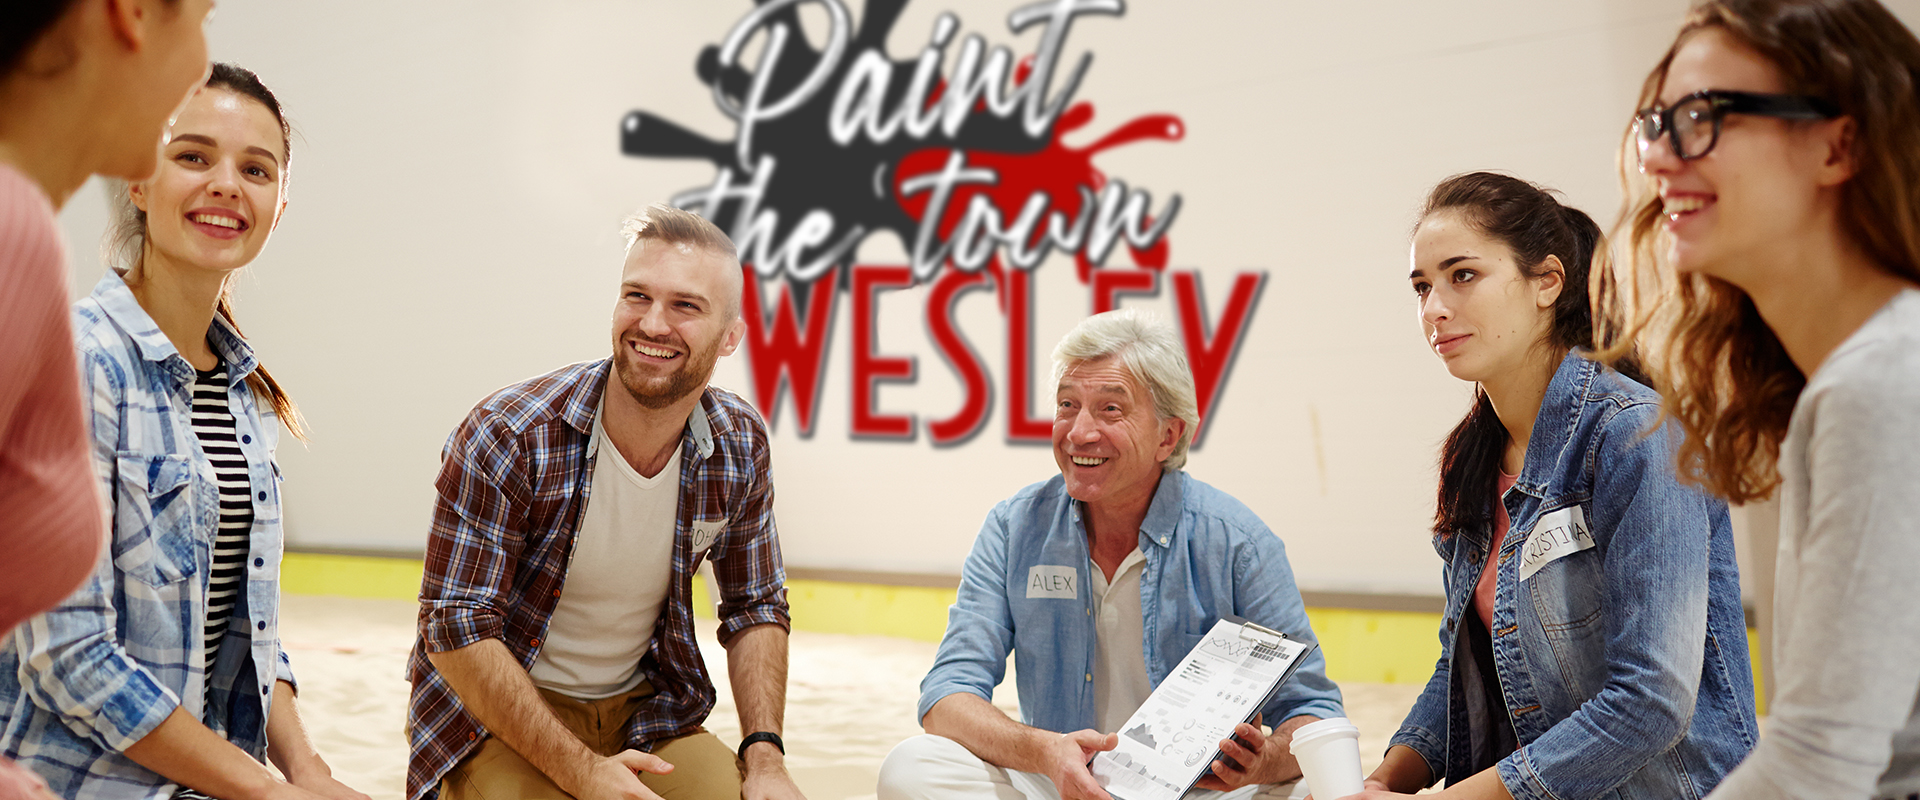 Paint the town wesley